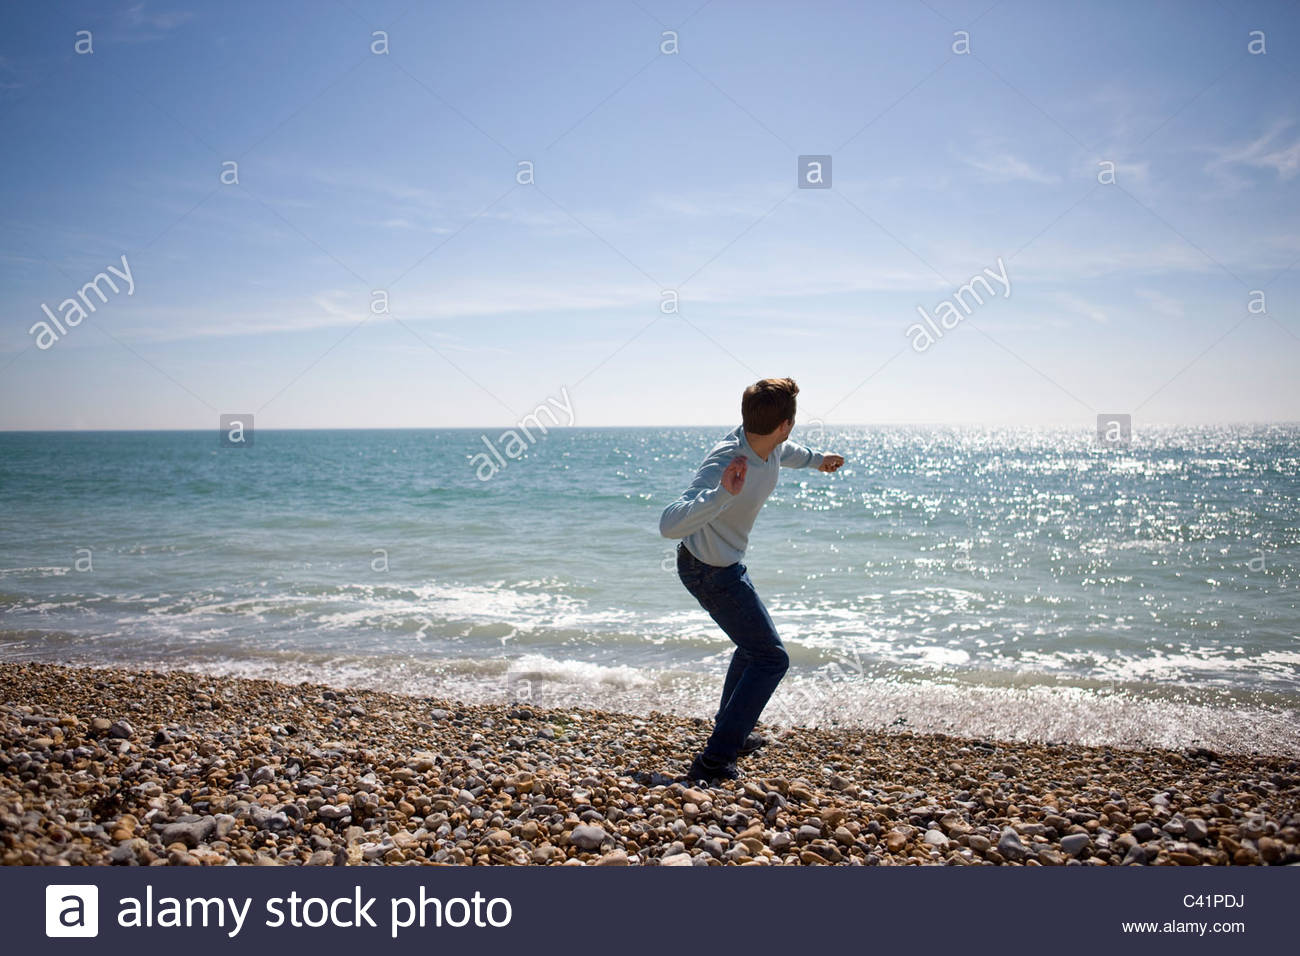 A young man throwing stones in the sea - Stock Image